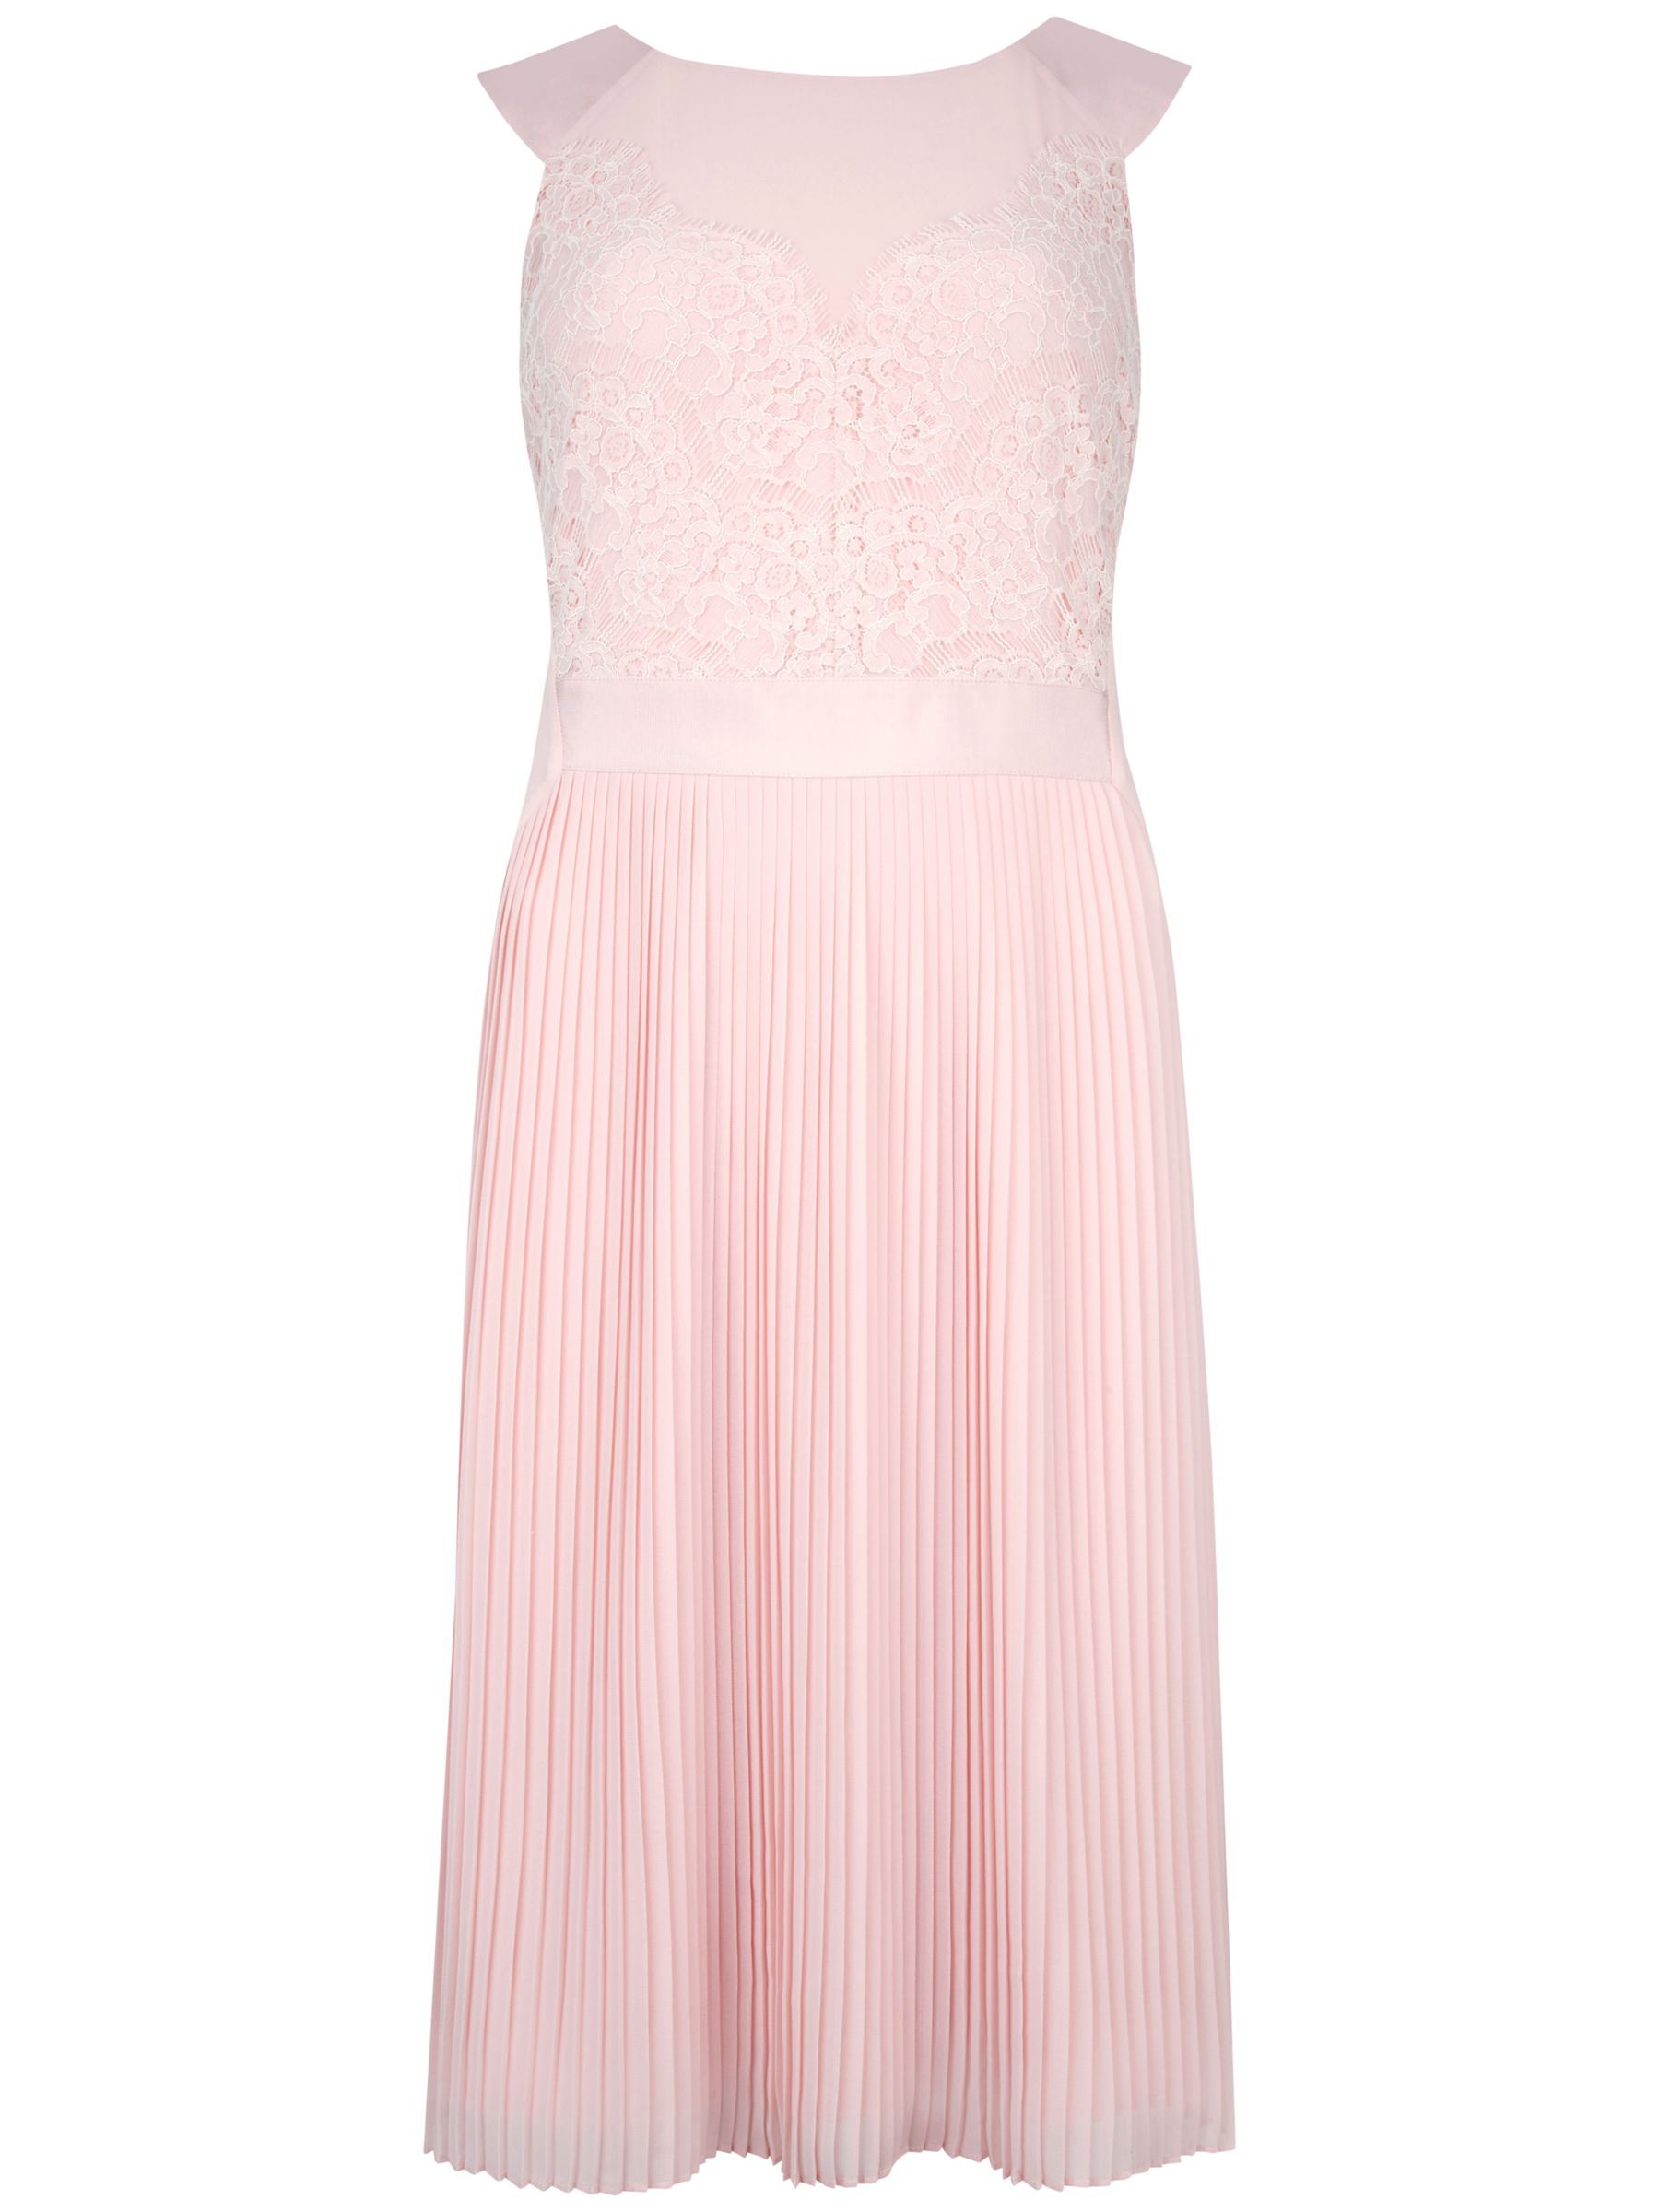 ted baker faybll lace bodice reversible dress pink, ted, baker, faybll, lace, bodice, reversible, dress, pink, ted baker, 5|0|3|1|2|4, edition magazine, ss15 trend pastels, women, womens dresses, gifts, wedding, wedding clothing, adult bridesmaids, fashion magazine, womenswear, men, brands l-z, 1879357